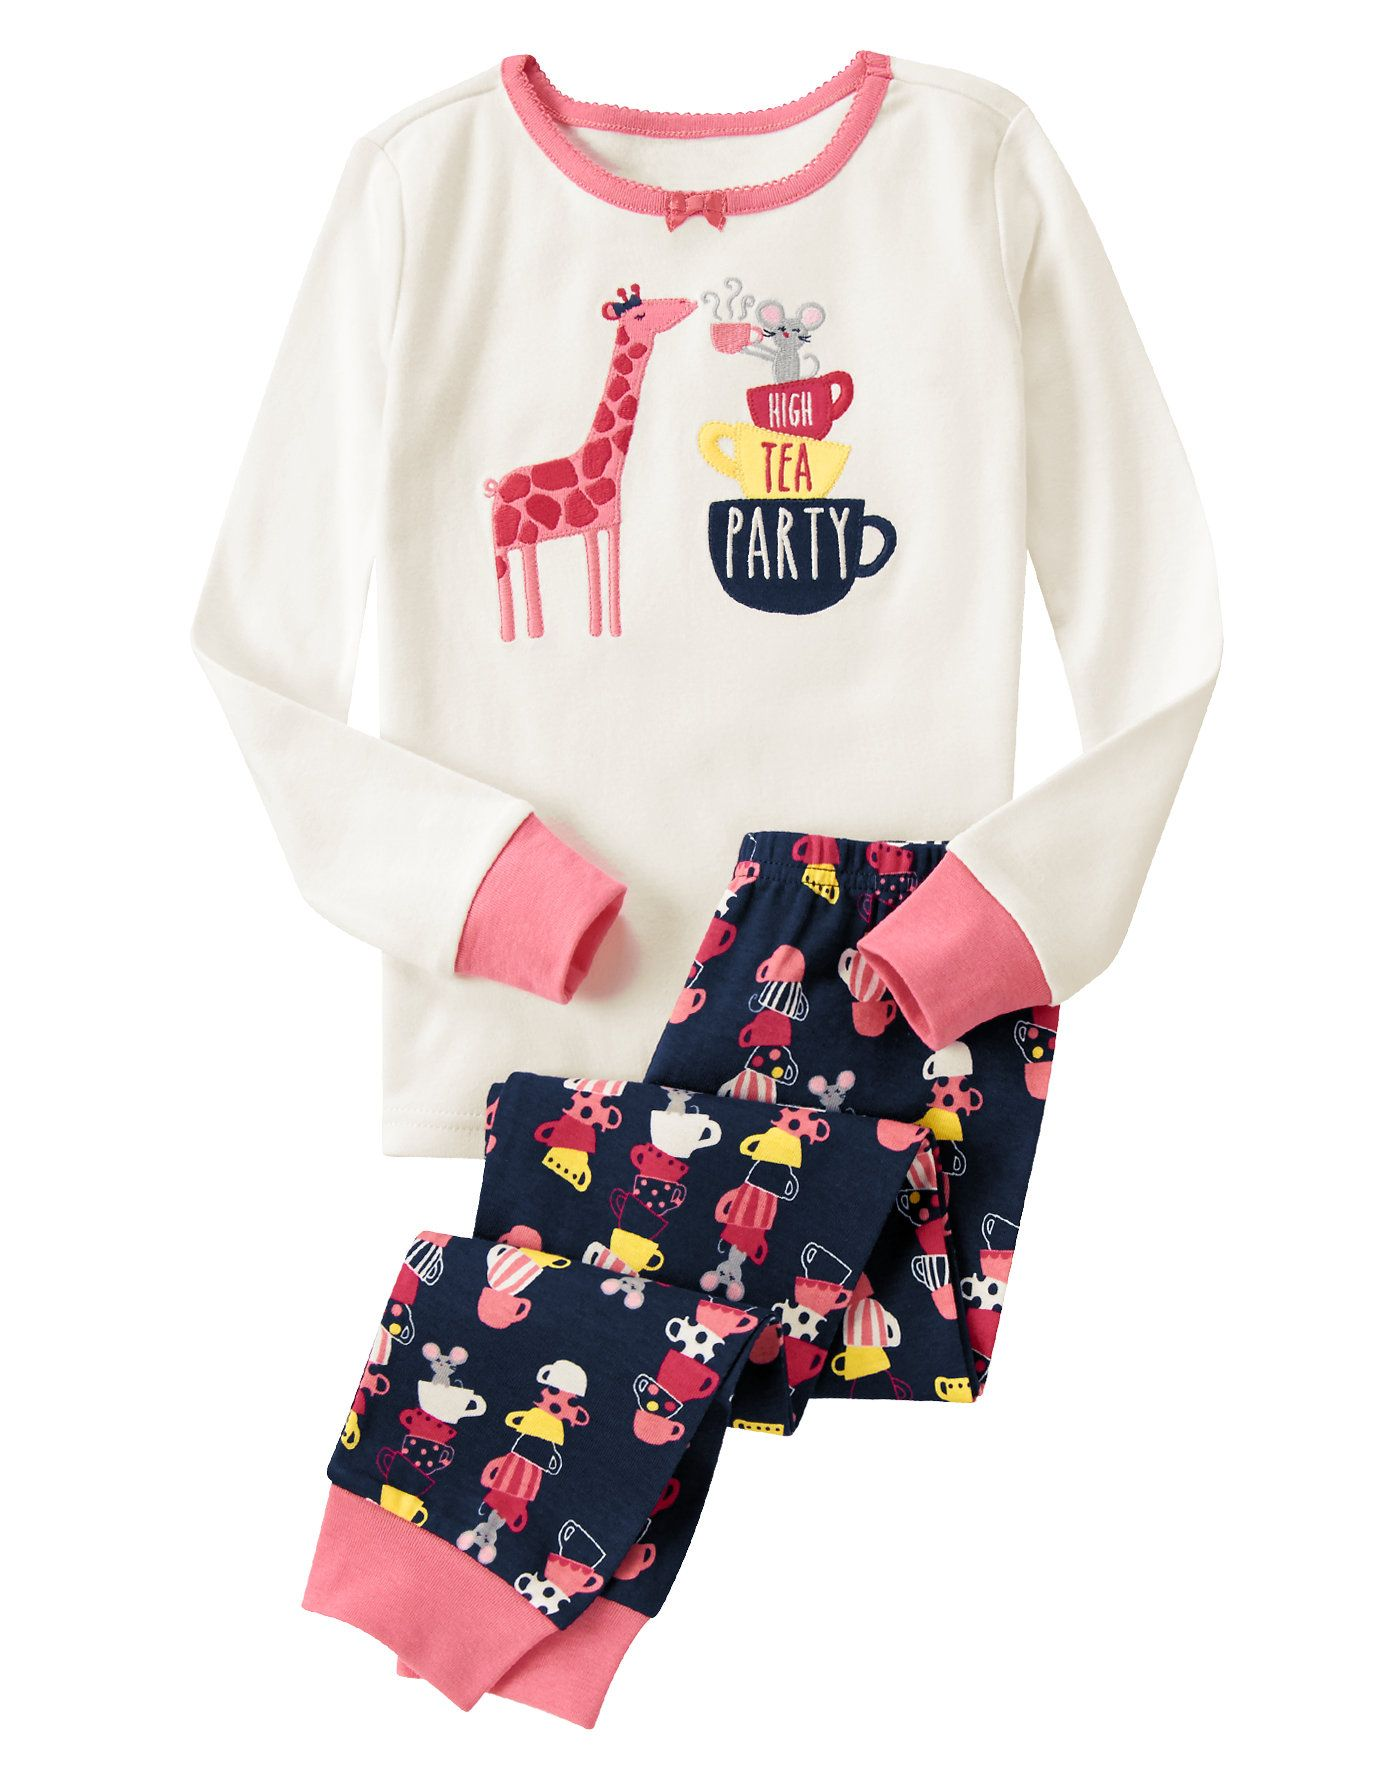 High Tea Party Two Piece Gymmies At Gymboree Stuff To Buy